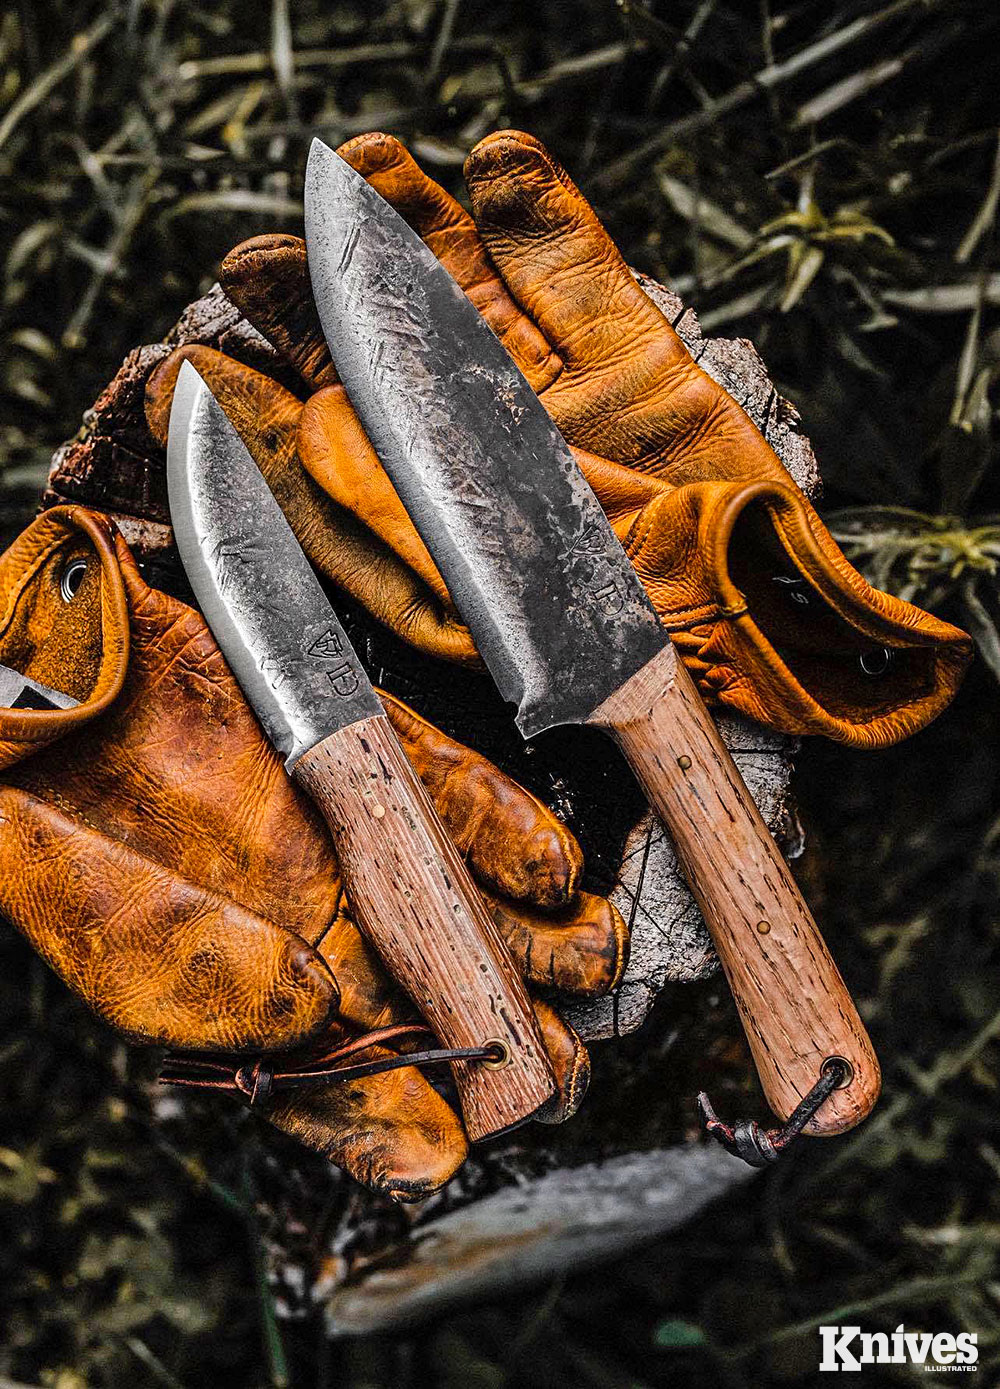 Jason Hunt designed two knives, the Raider (L) and the Colonel, and carries both of them regularly.